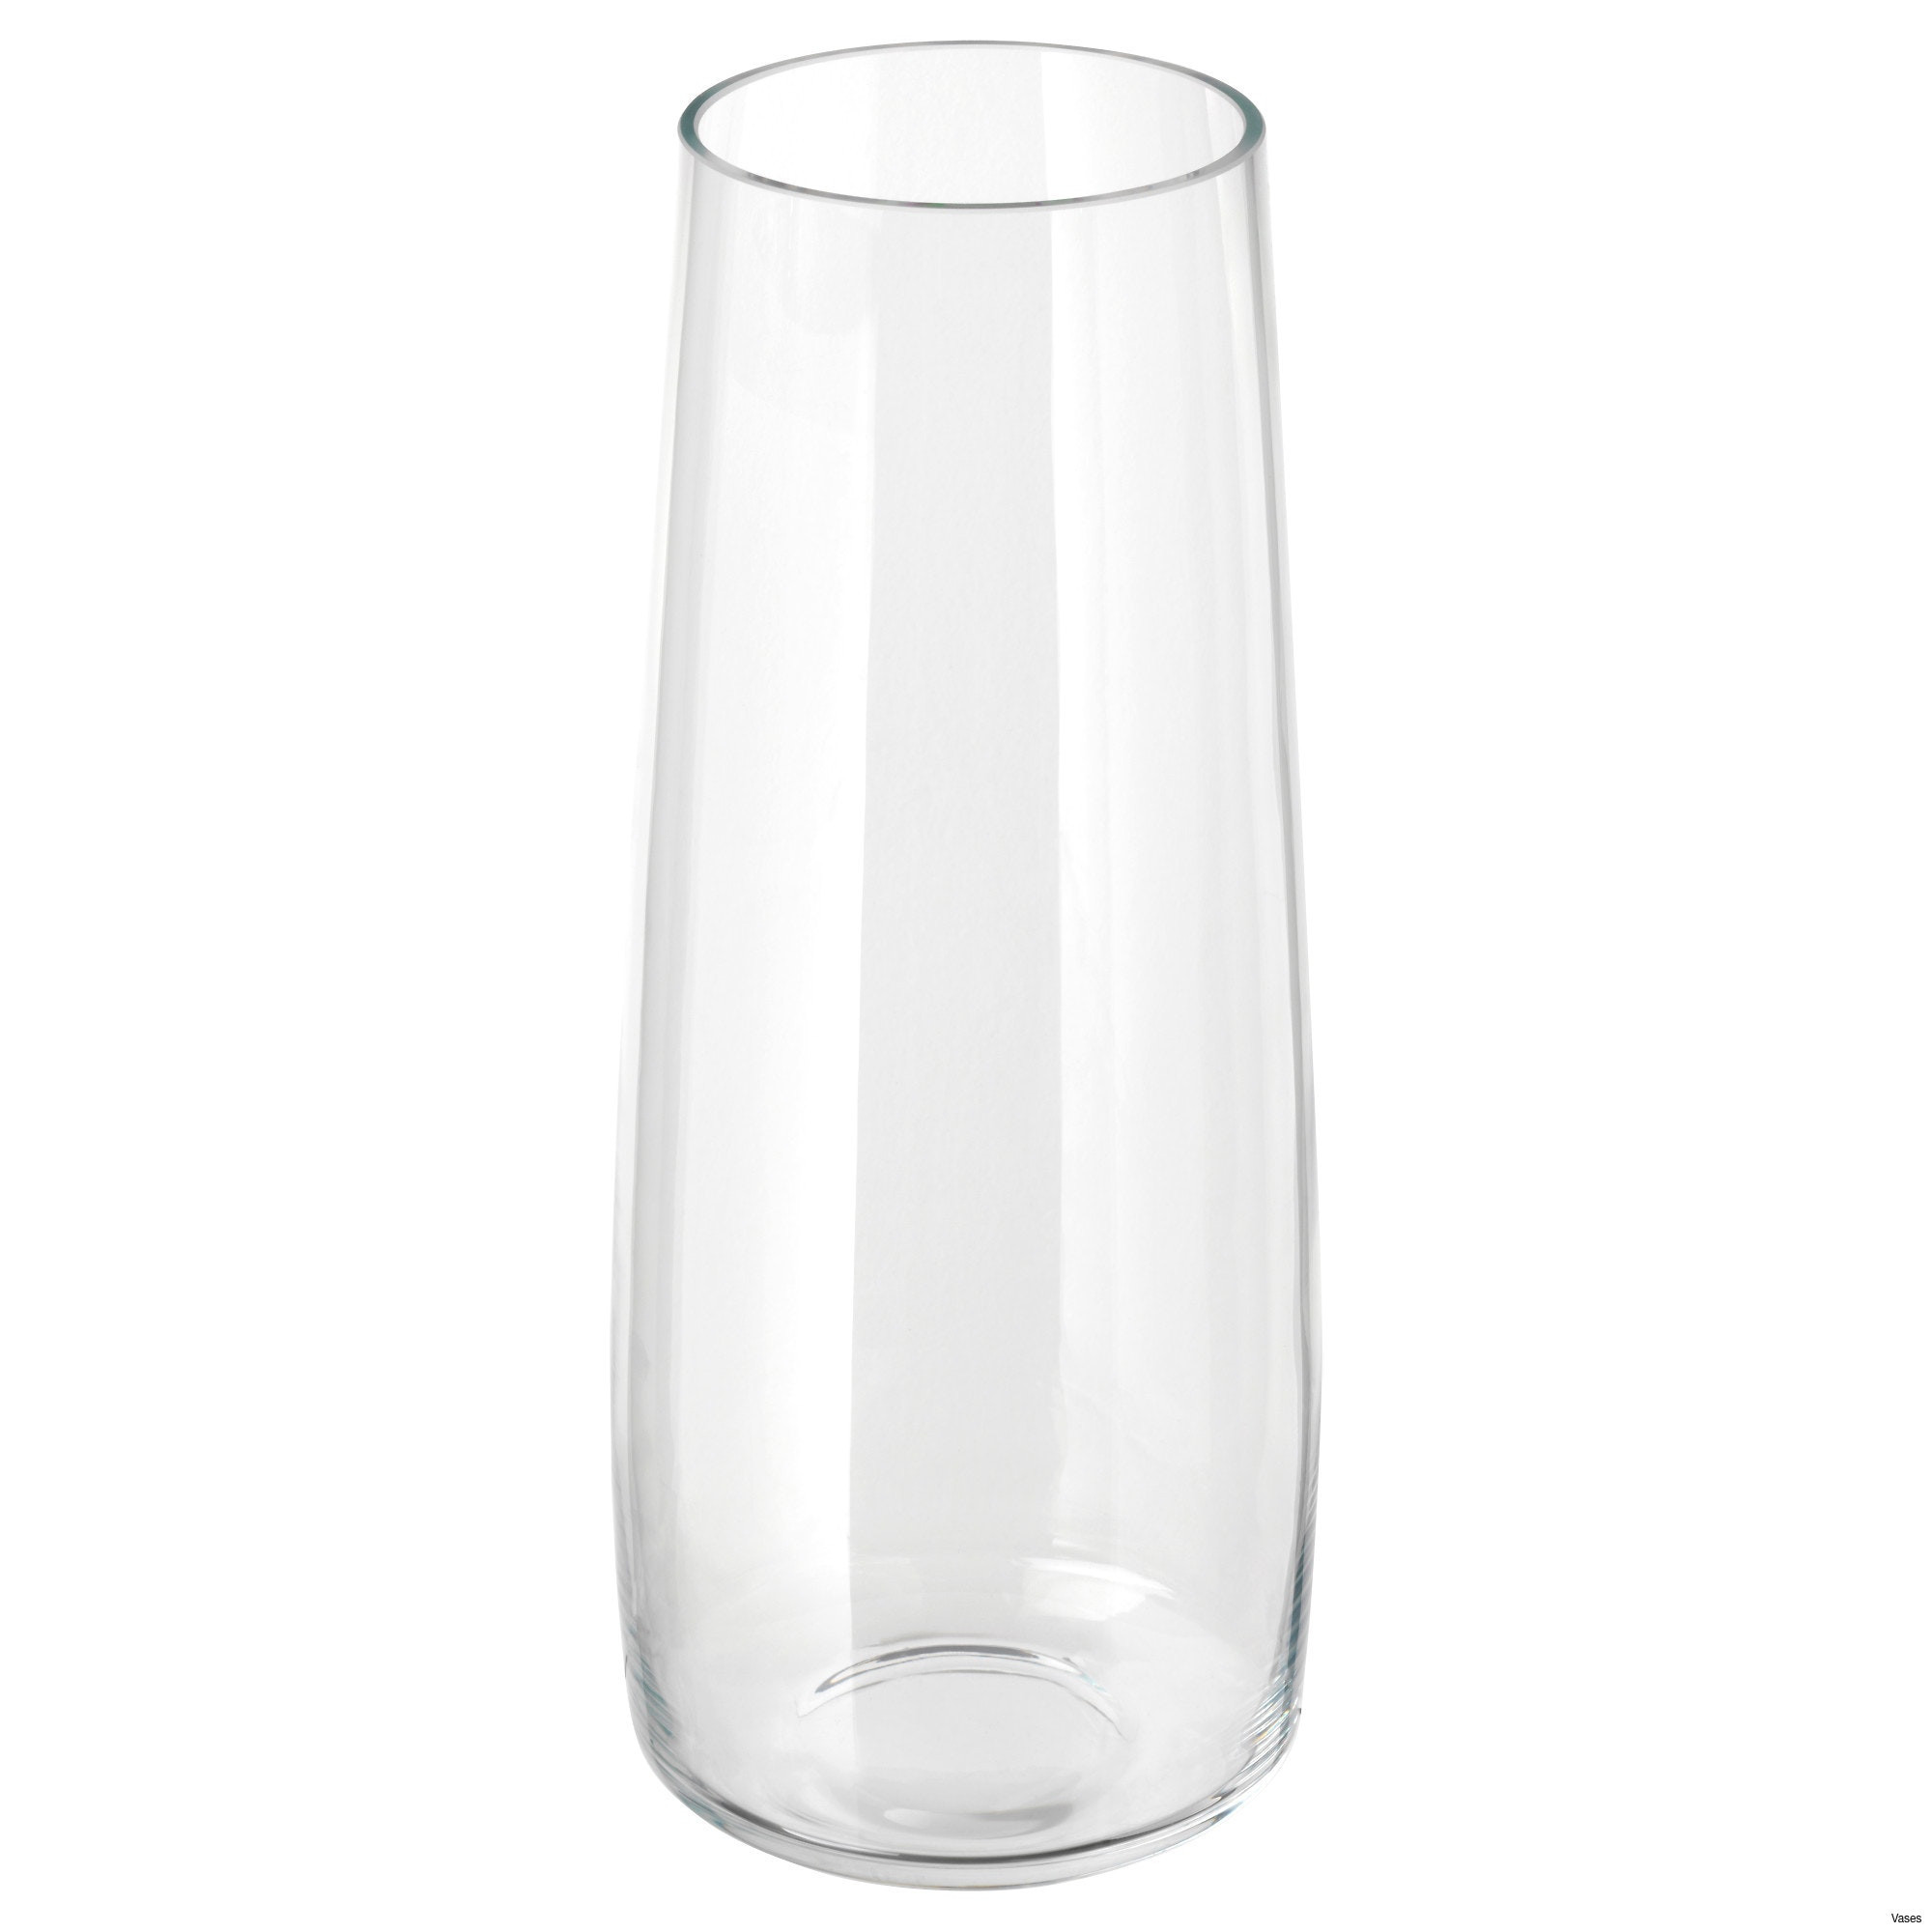 purple swirl vase of large clear vase collection clear glass planters best clear glass within clear glass planters best clear glass vases